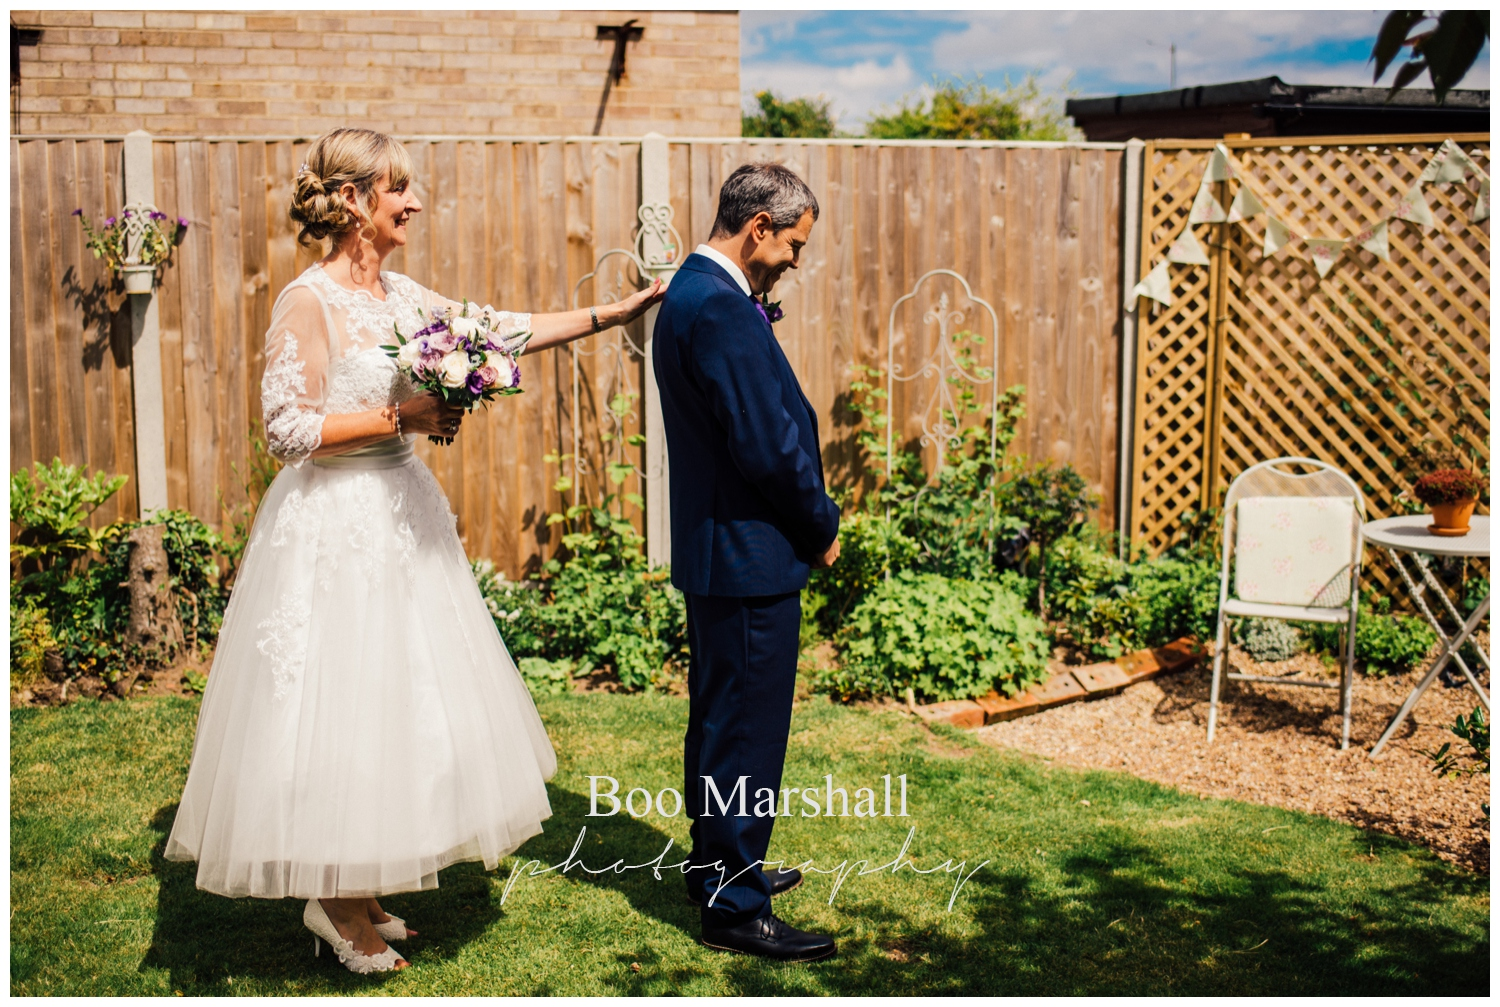 ian-and-steph-56_norwich-castle-small-wedding